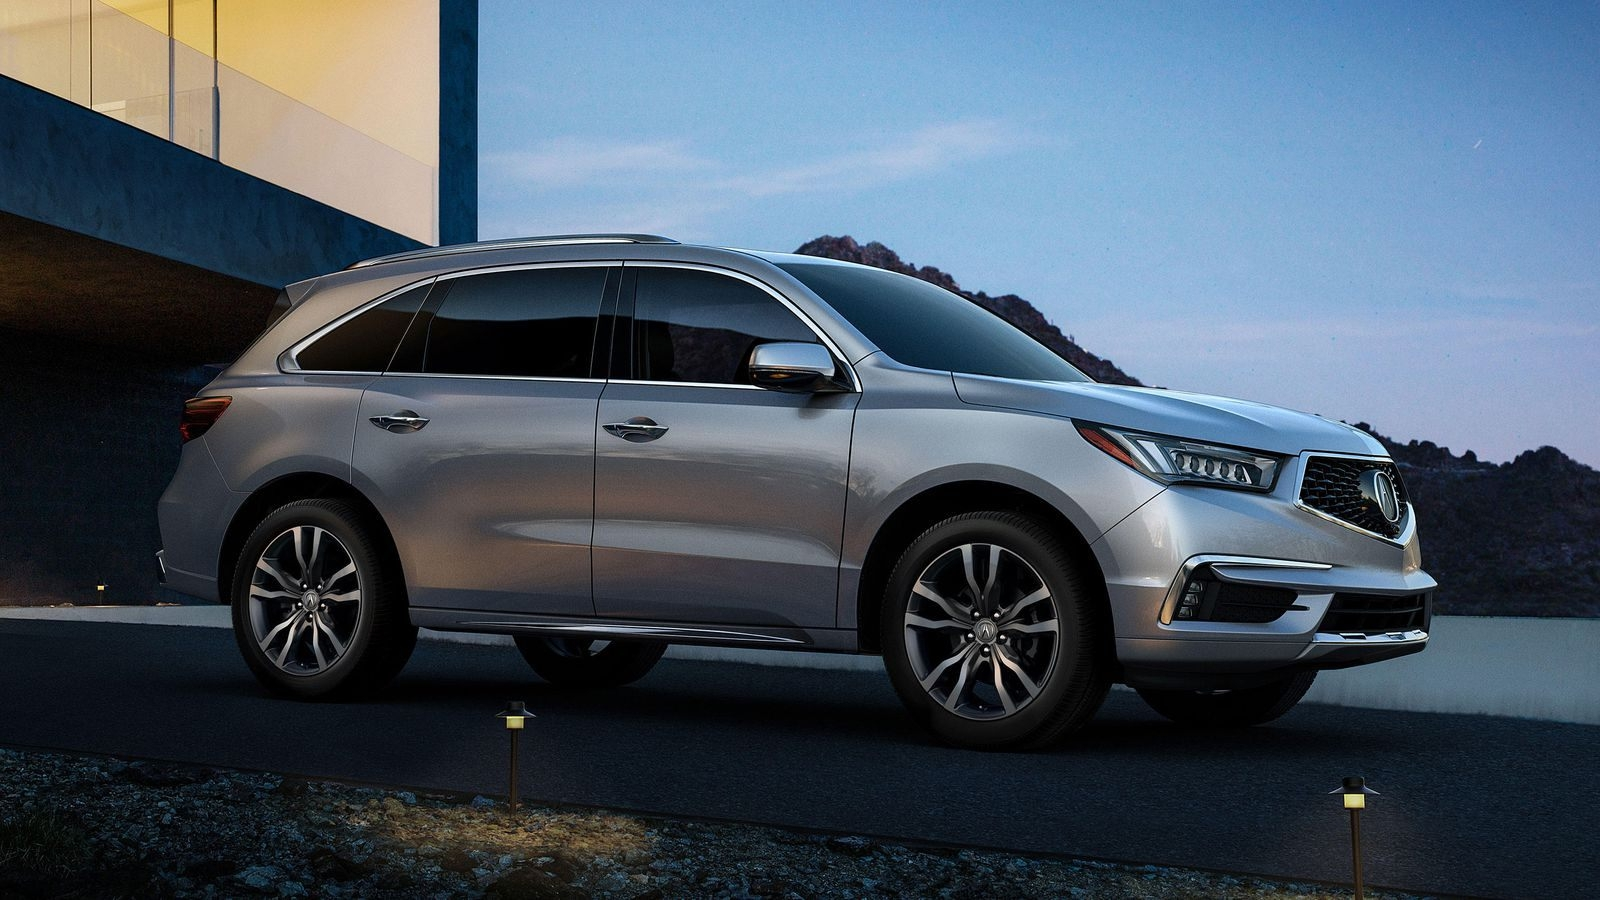 52 The Best 2019 Acura Mdx Rumors Model